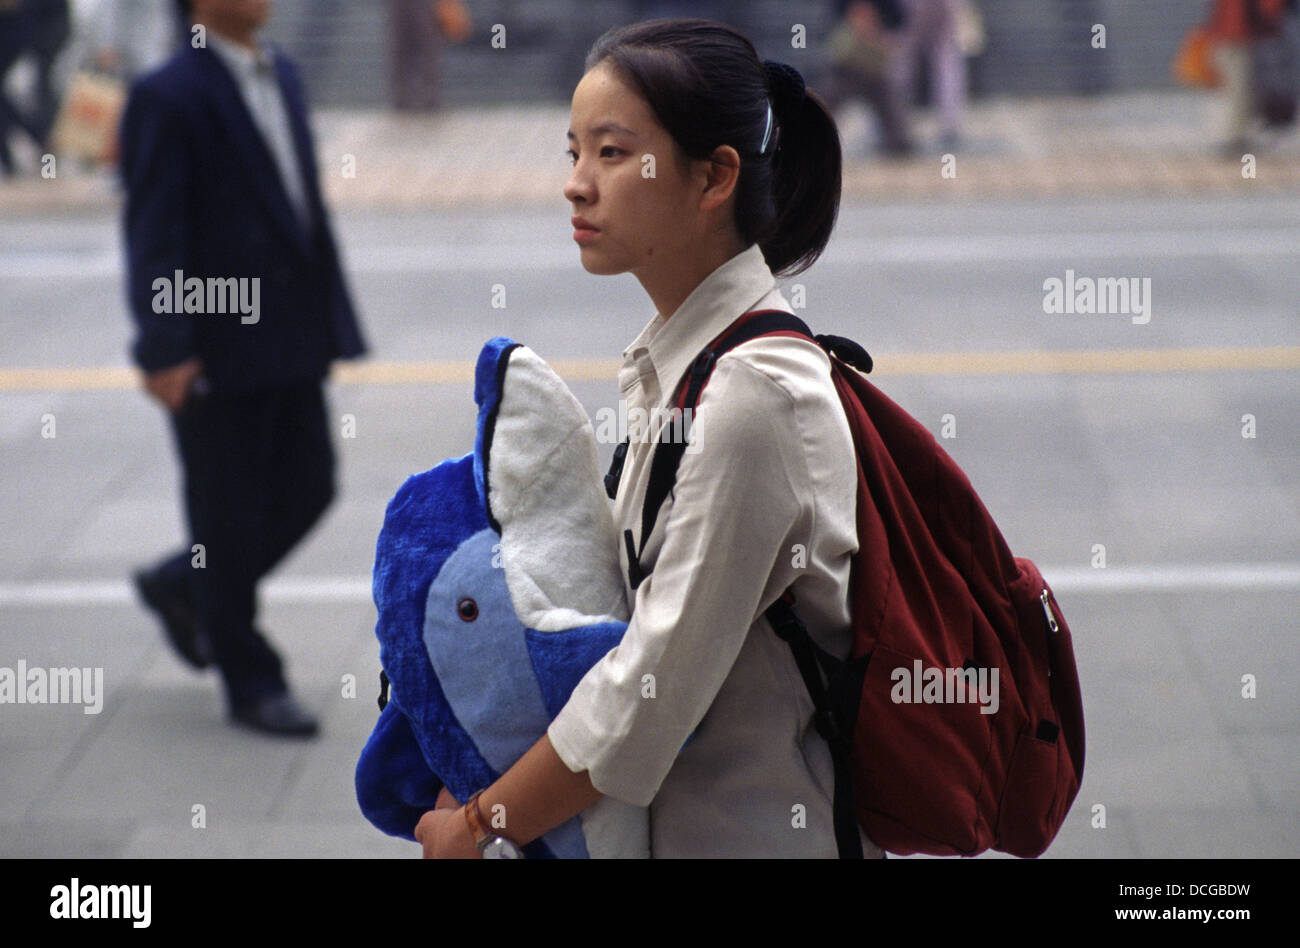 A young Chinese schoolgirl carrying a dolphin toy in Wangfujing pedestrian street located in Dongcheng District - Stock Image